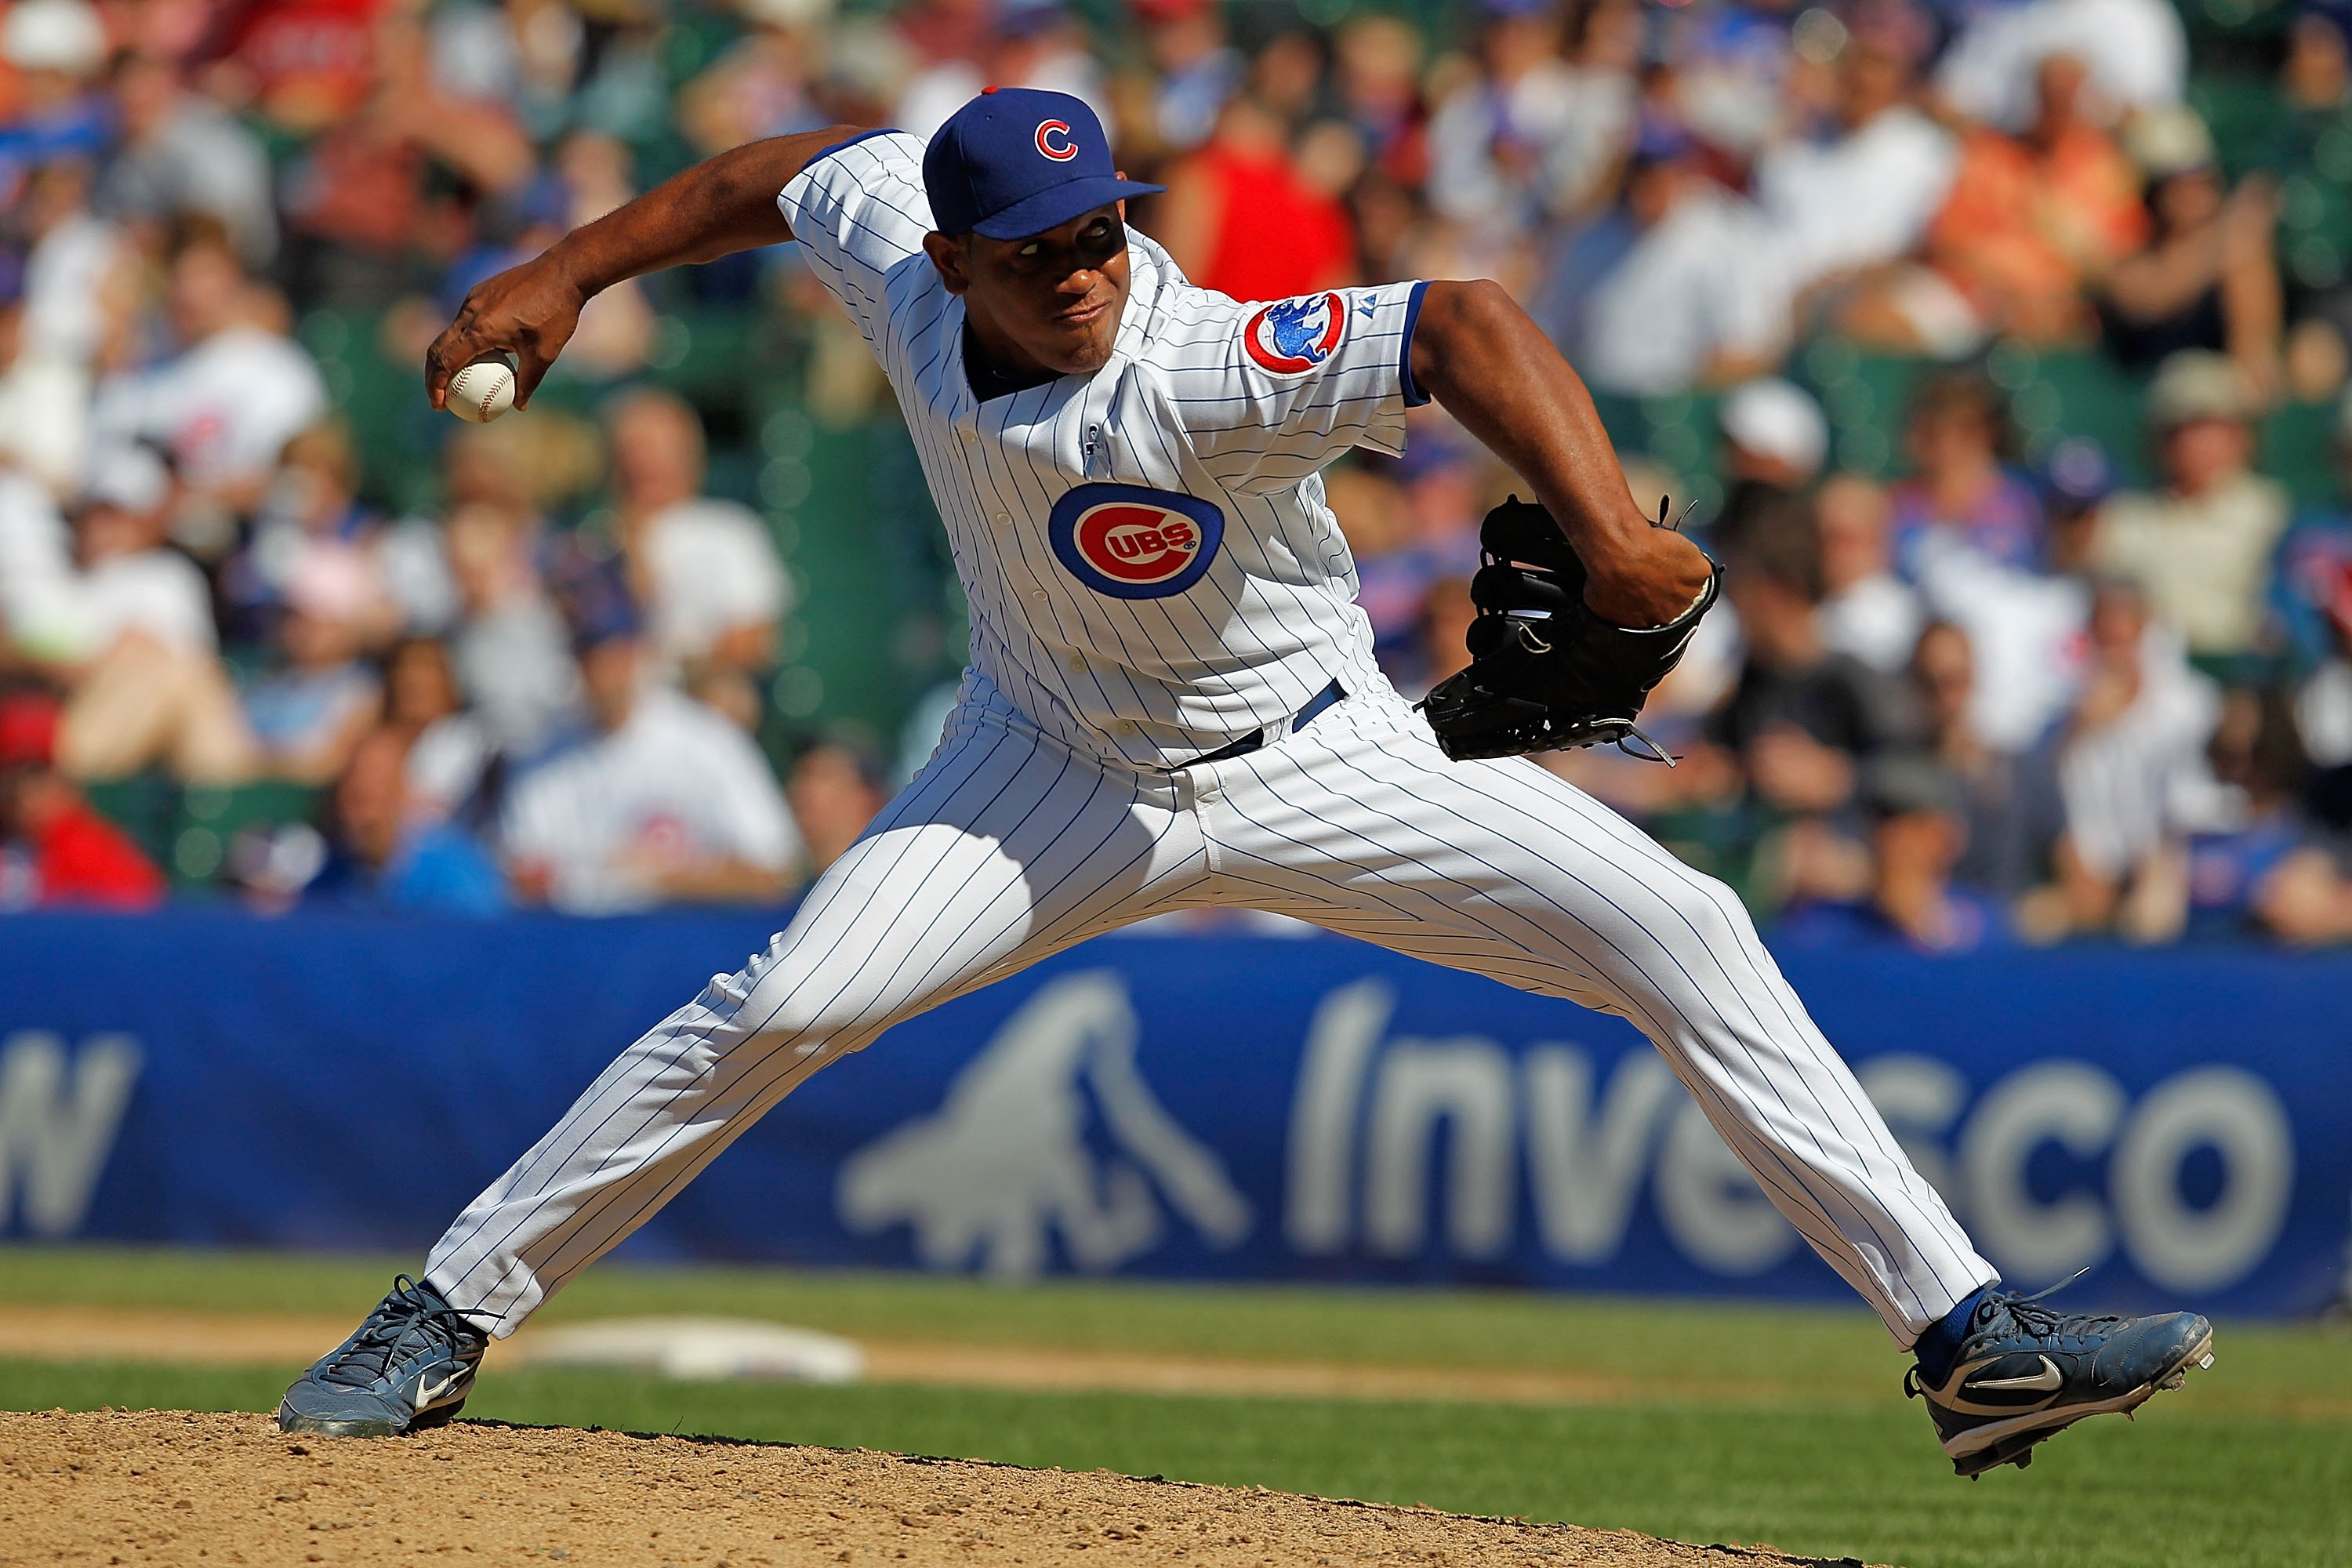 CHICAGO - JUNE 20: Carlos Marmol #49 of the Chicago Cubs pitches in the 9th inning against the Los Angeles Angels of Anaheim at Wrigley Field on June 20, 2010 in Chicago, Illinois. The Cubs defeated the Angels 12-1. (Photo by Jonathan Daniel/Getty Images)